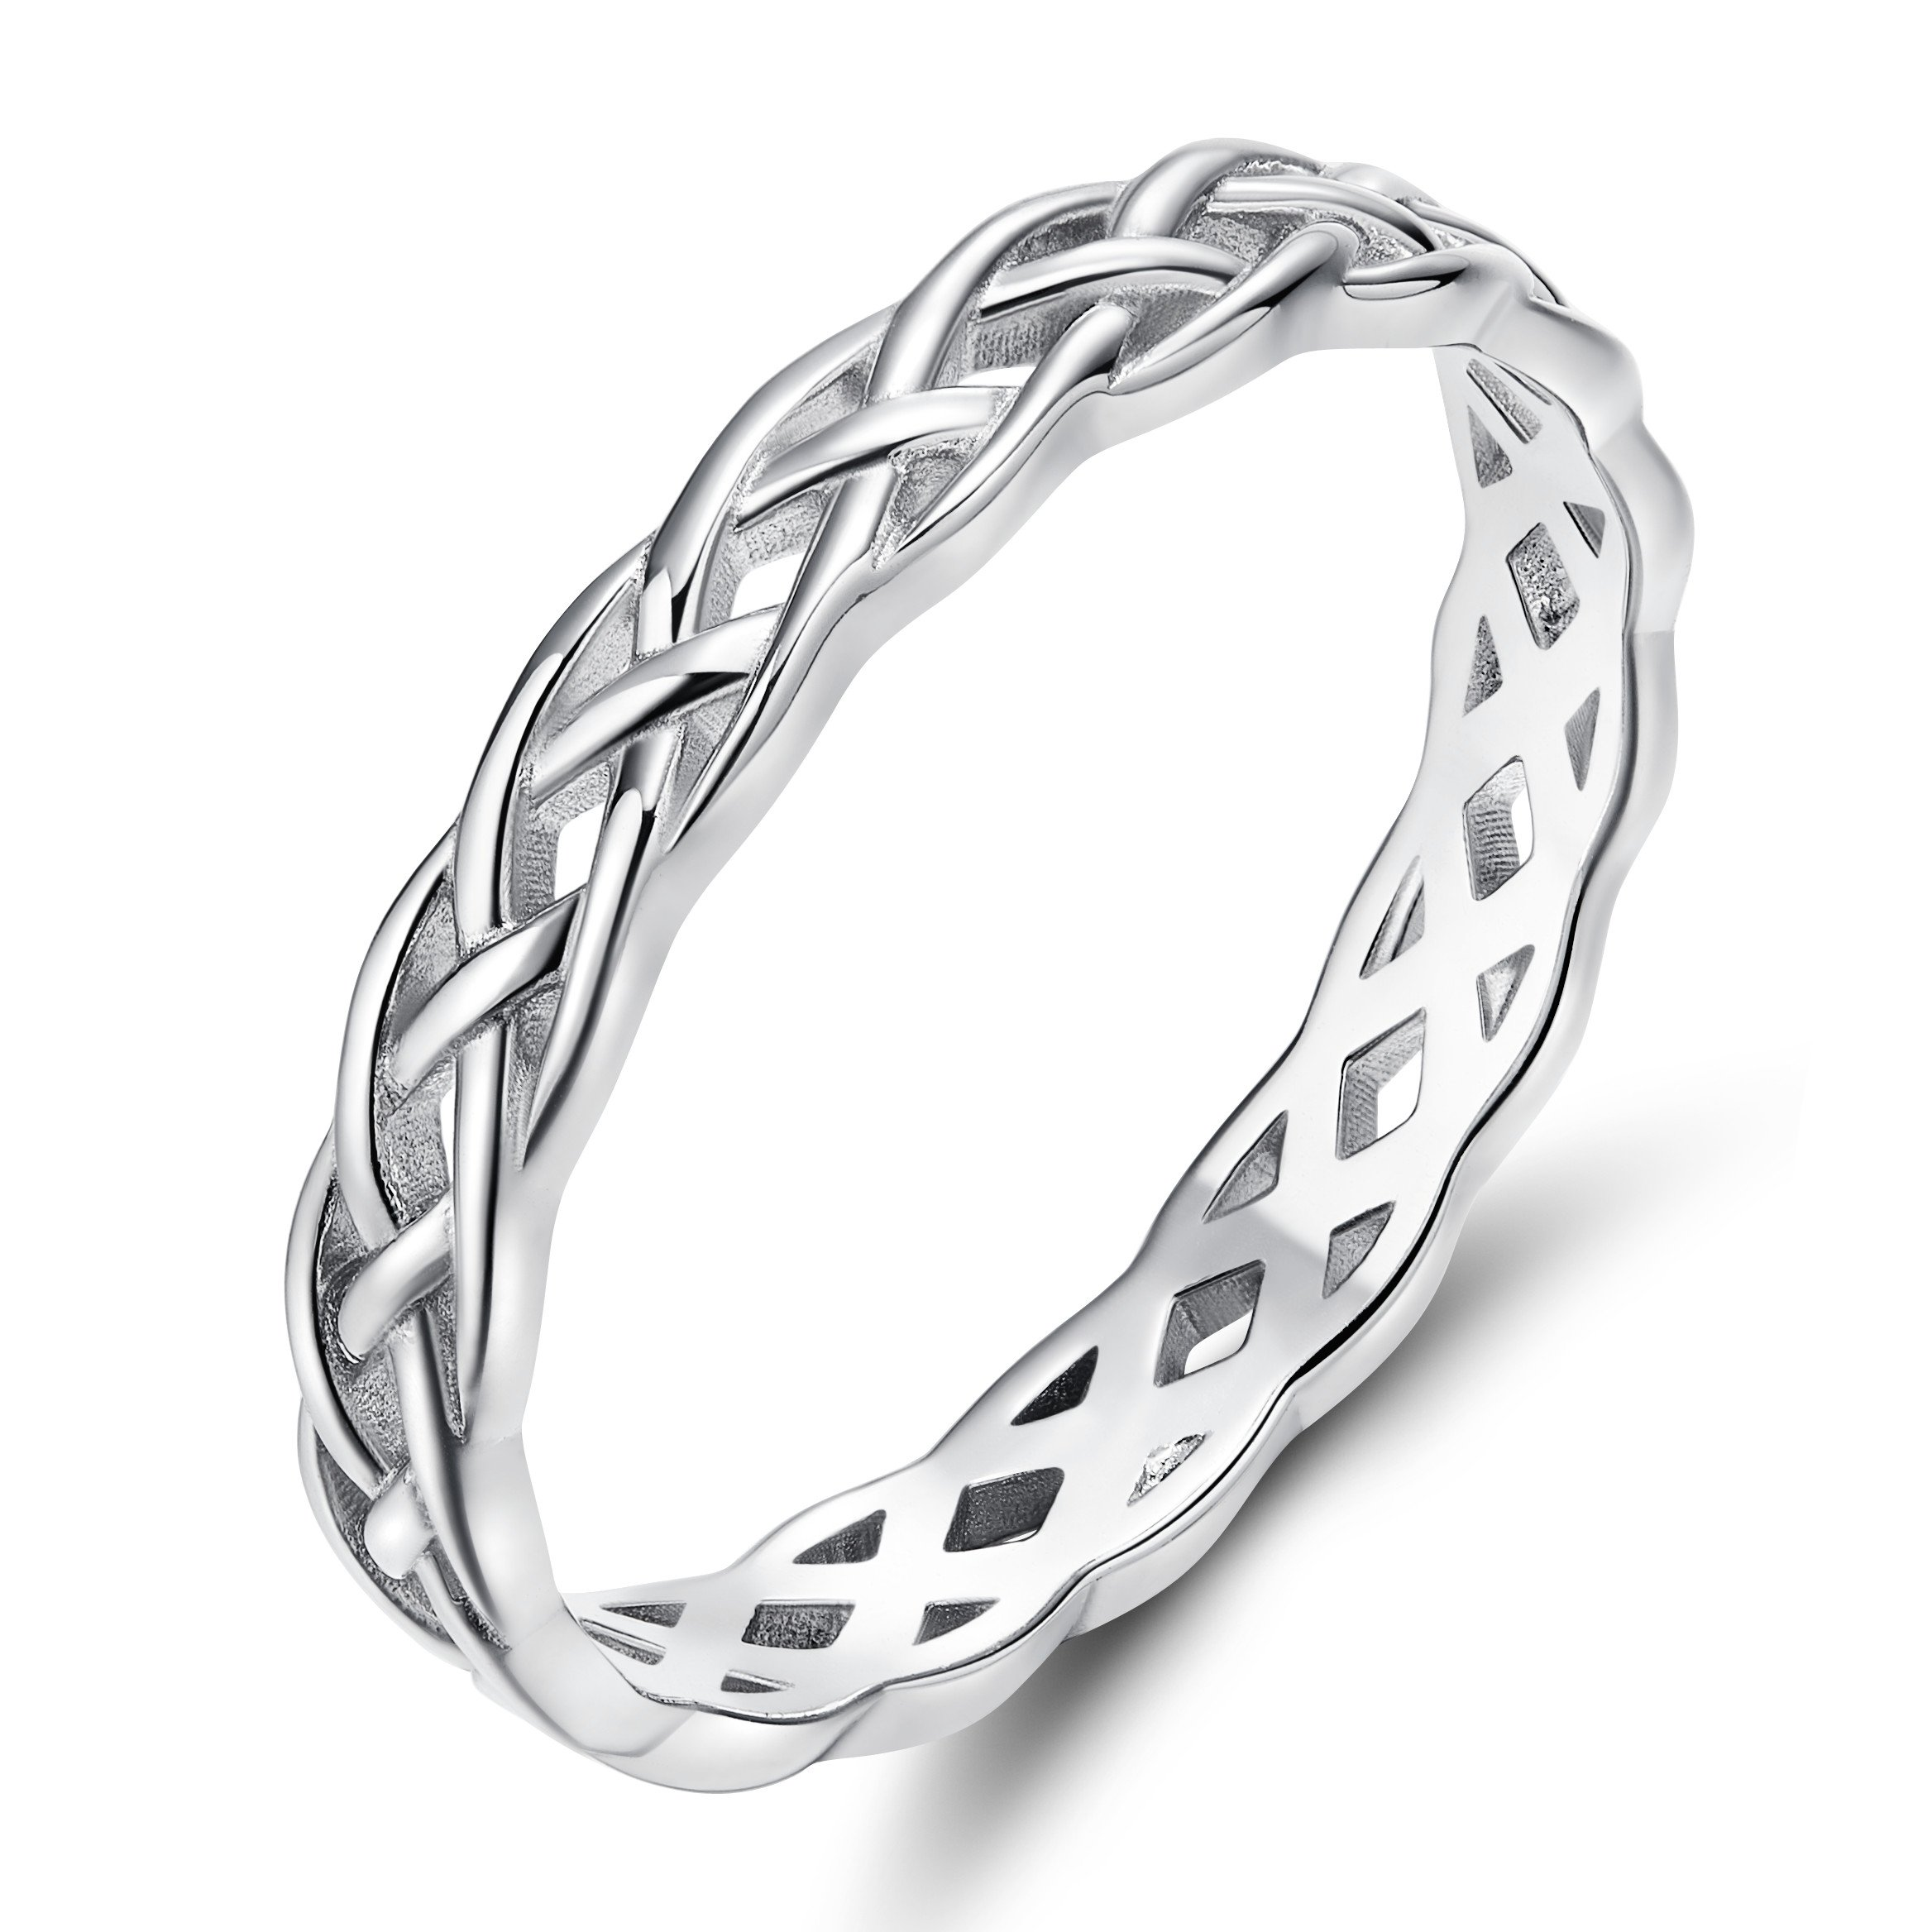 SOMEN TUNGSTEN 925 Sterling Silver Ring 4mm Eternity Celtic Knot Wedding Band for Women Size 7 by SOMEN TUNGSTEN